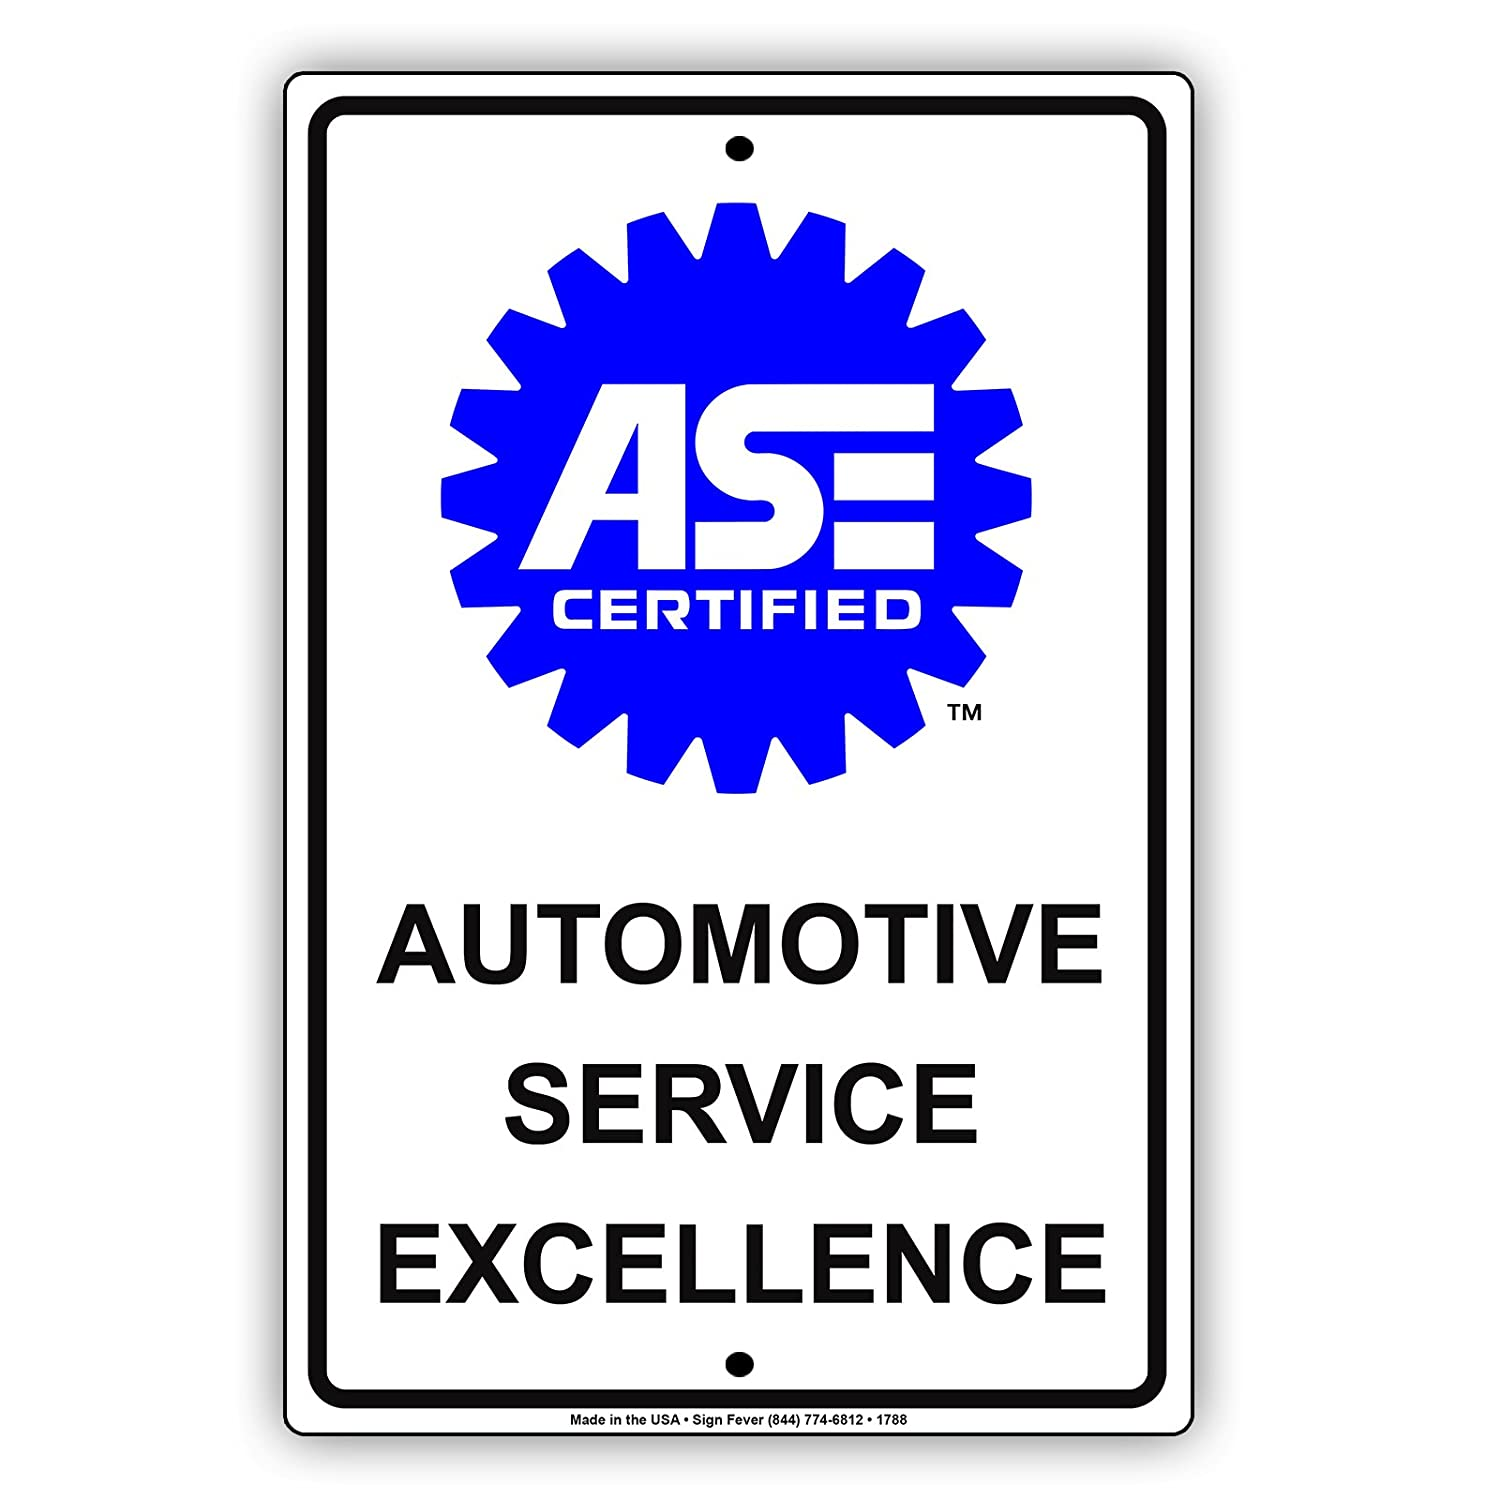 Amazon Ase Certified Automotive Service Excellence With Graphic